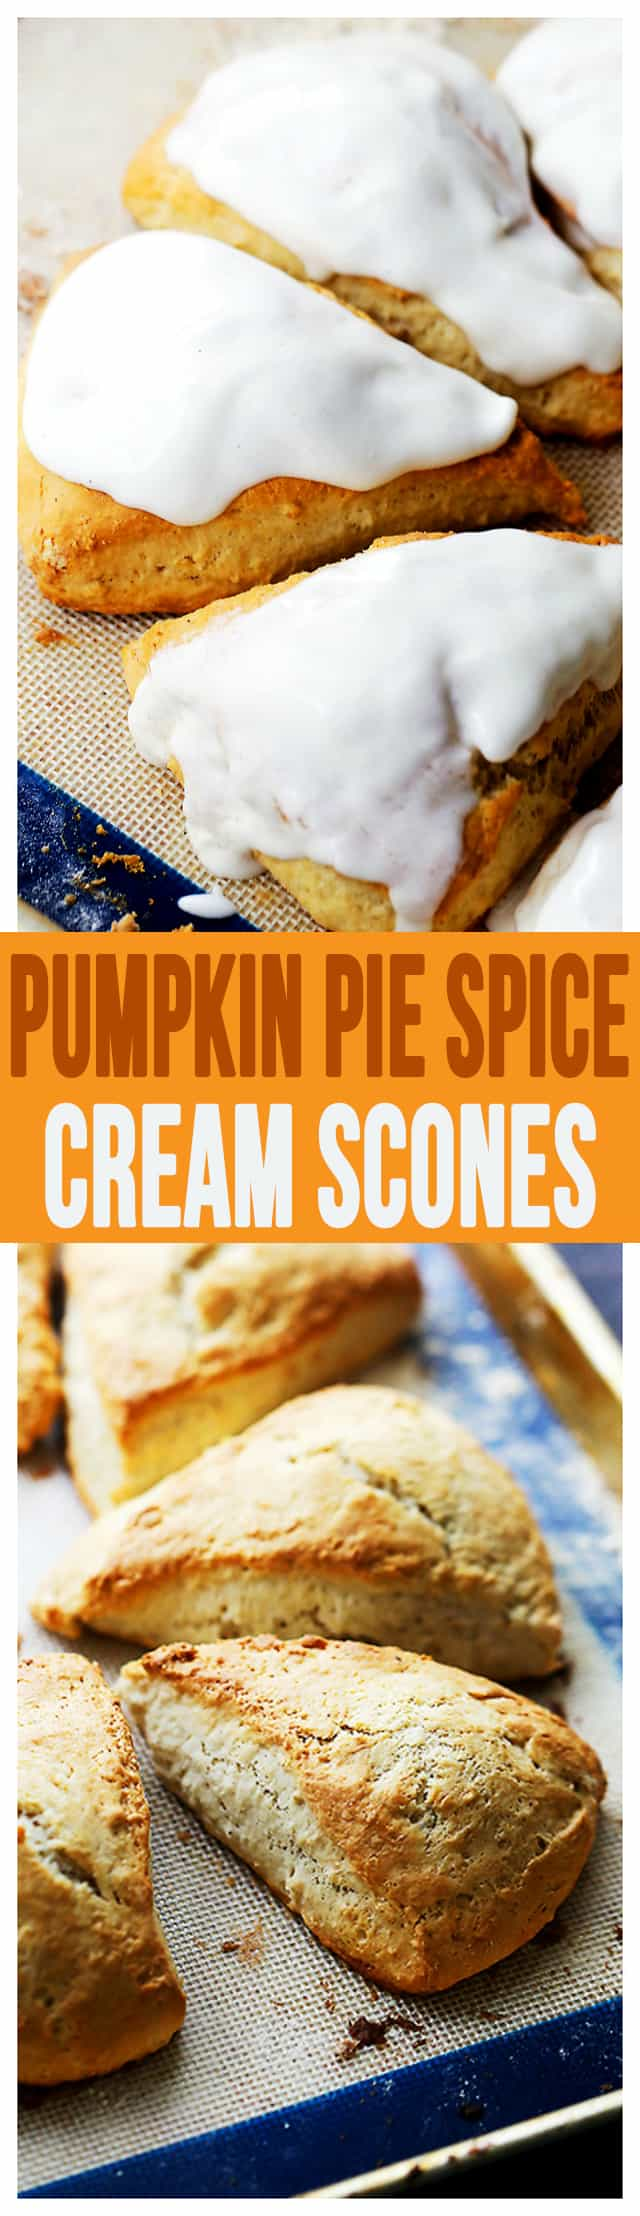 Pumpkin Pie Spice Cream Scones - Plump, rich, yet light and sweet scones flavored with pumpkin pie spice creamer and a simple spiced glaze.